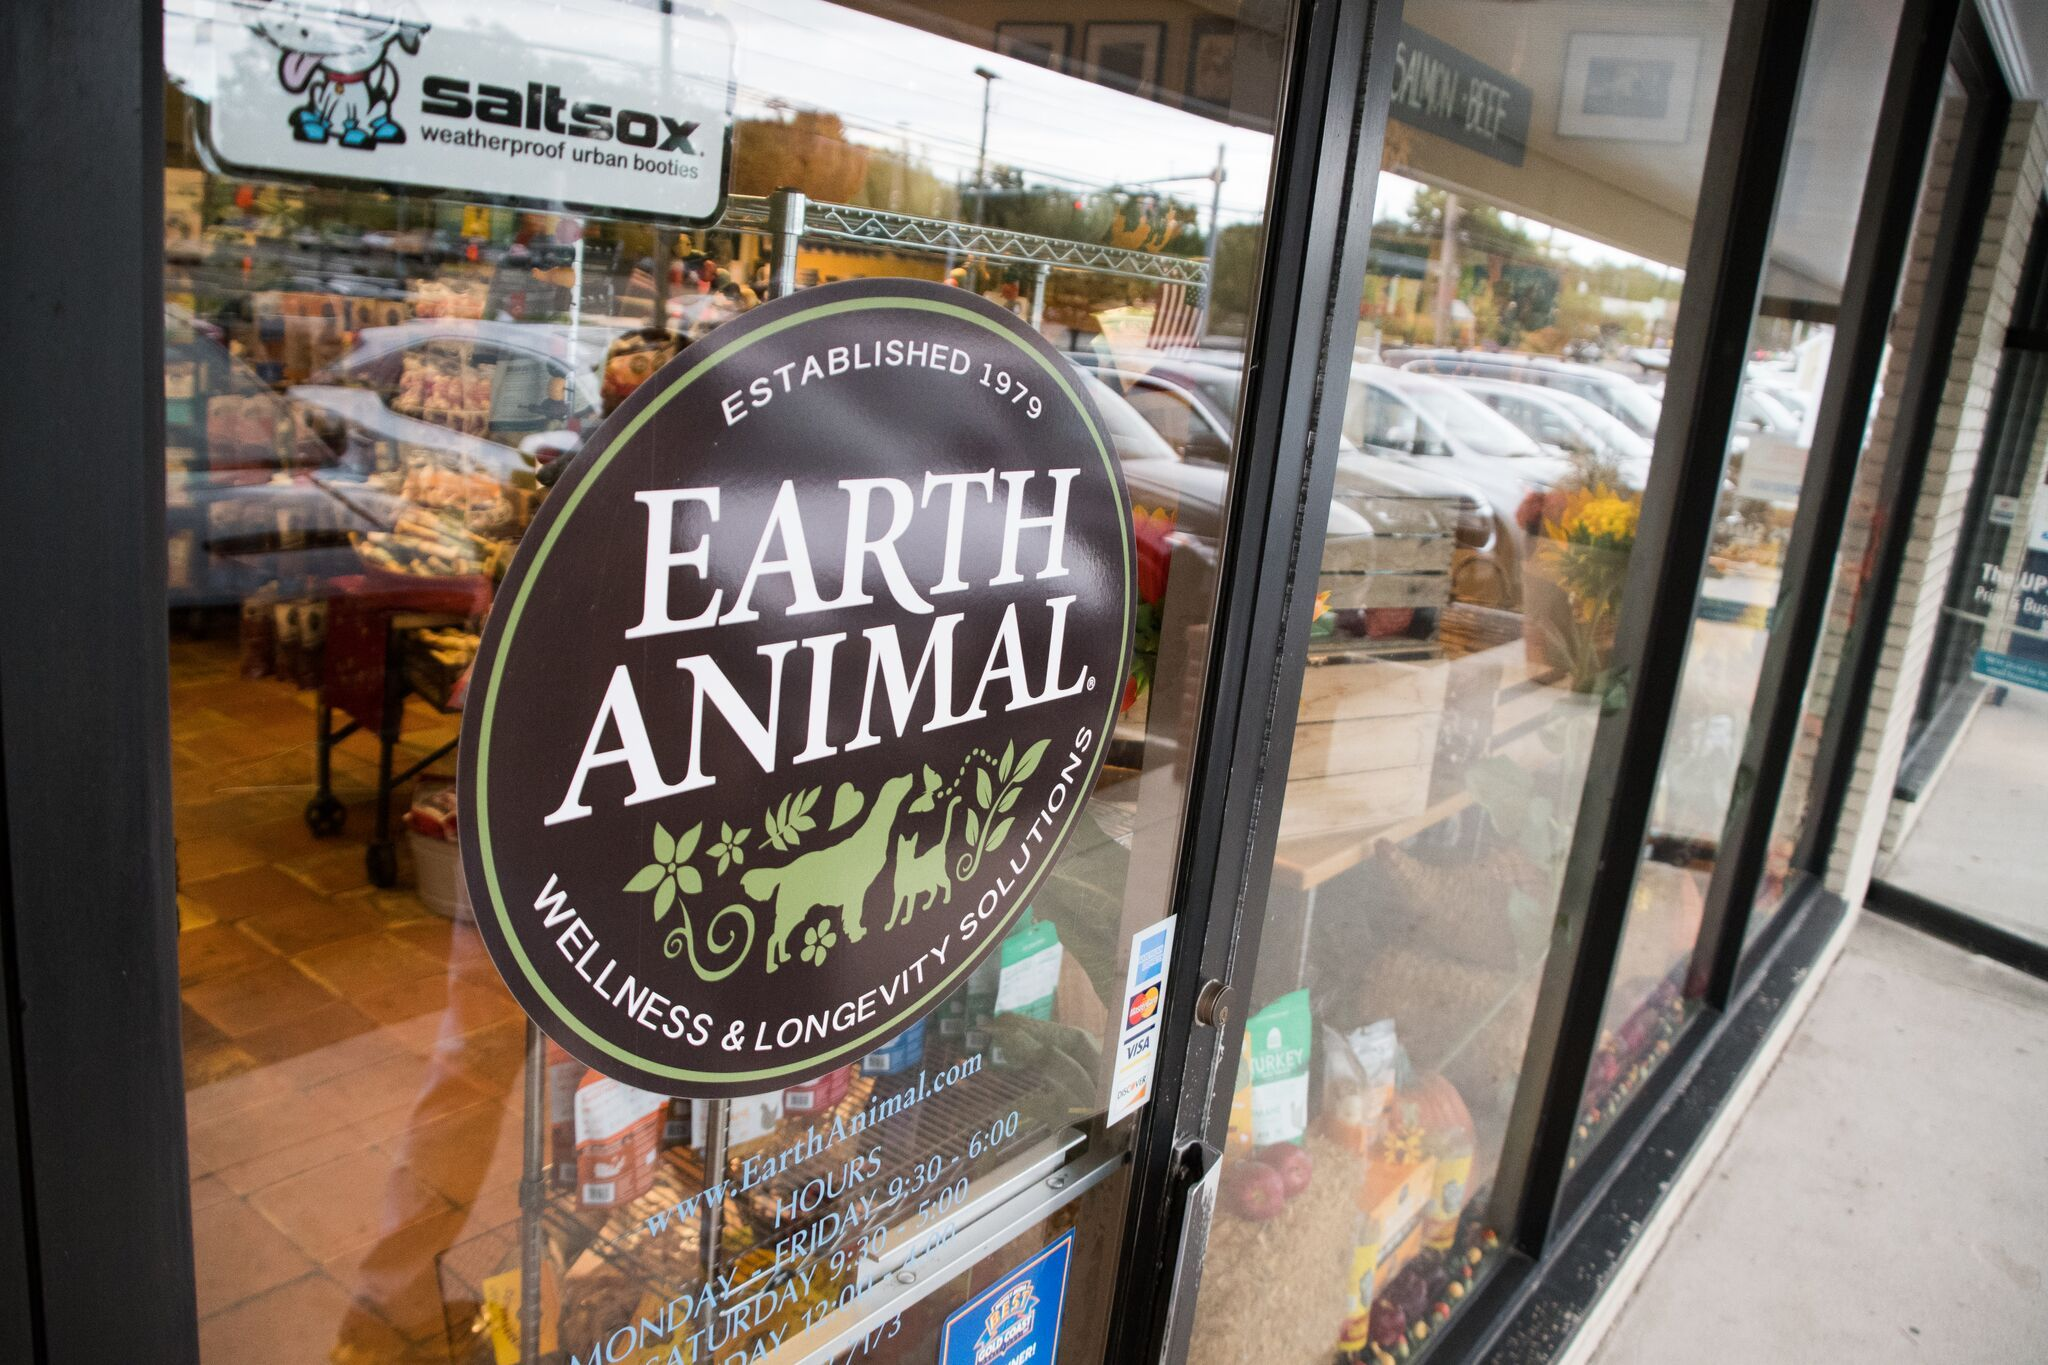 Earth Animal Retail store in Westport, CT (With images